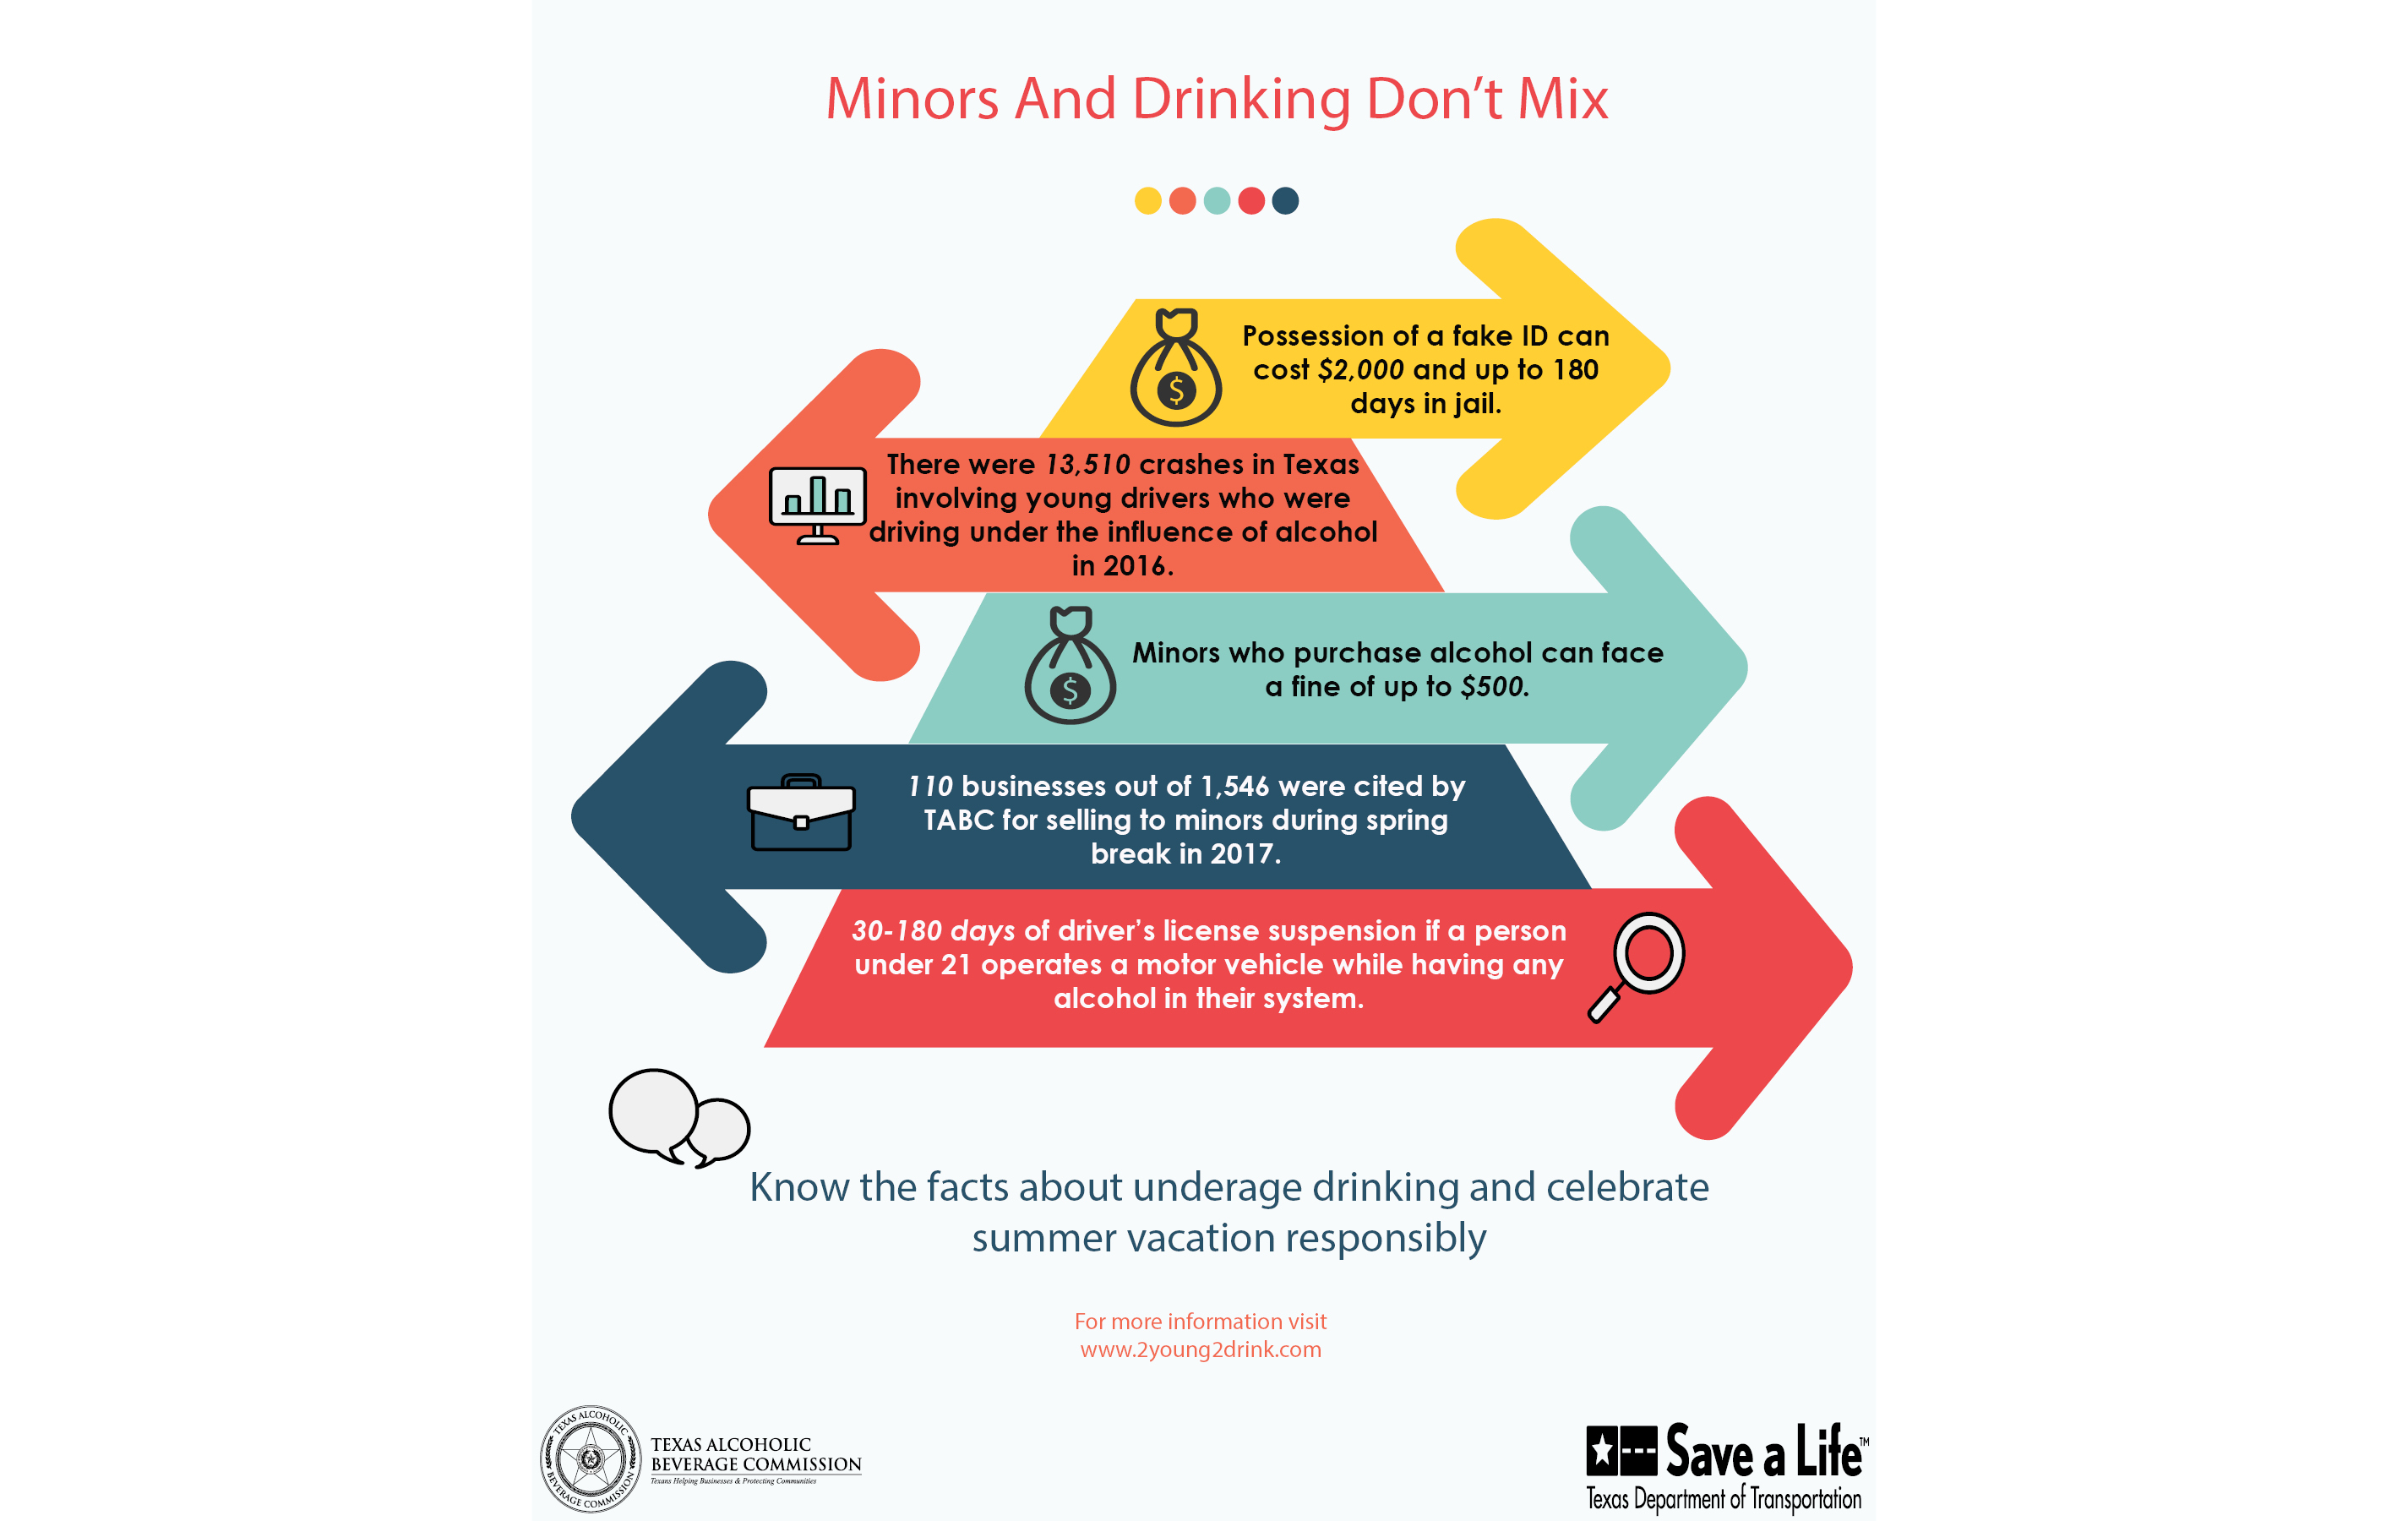 Minors and Drinking Don't Mix Flyer